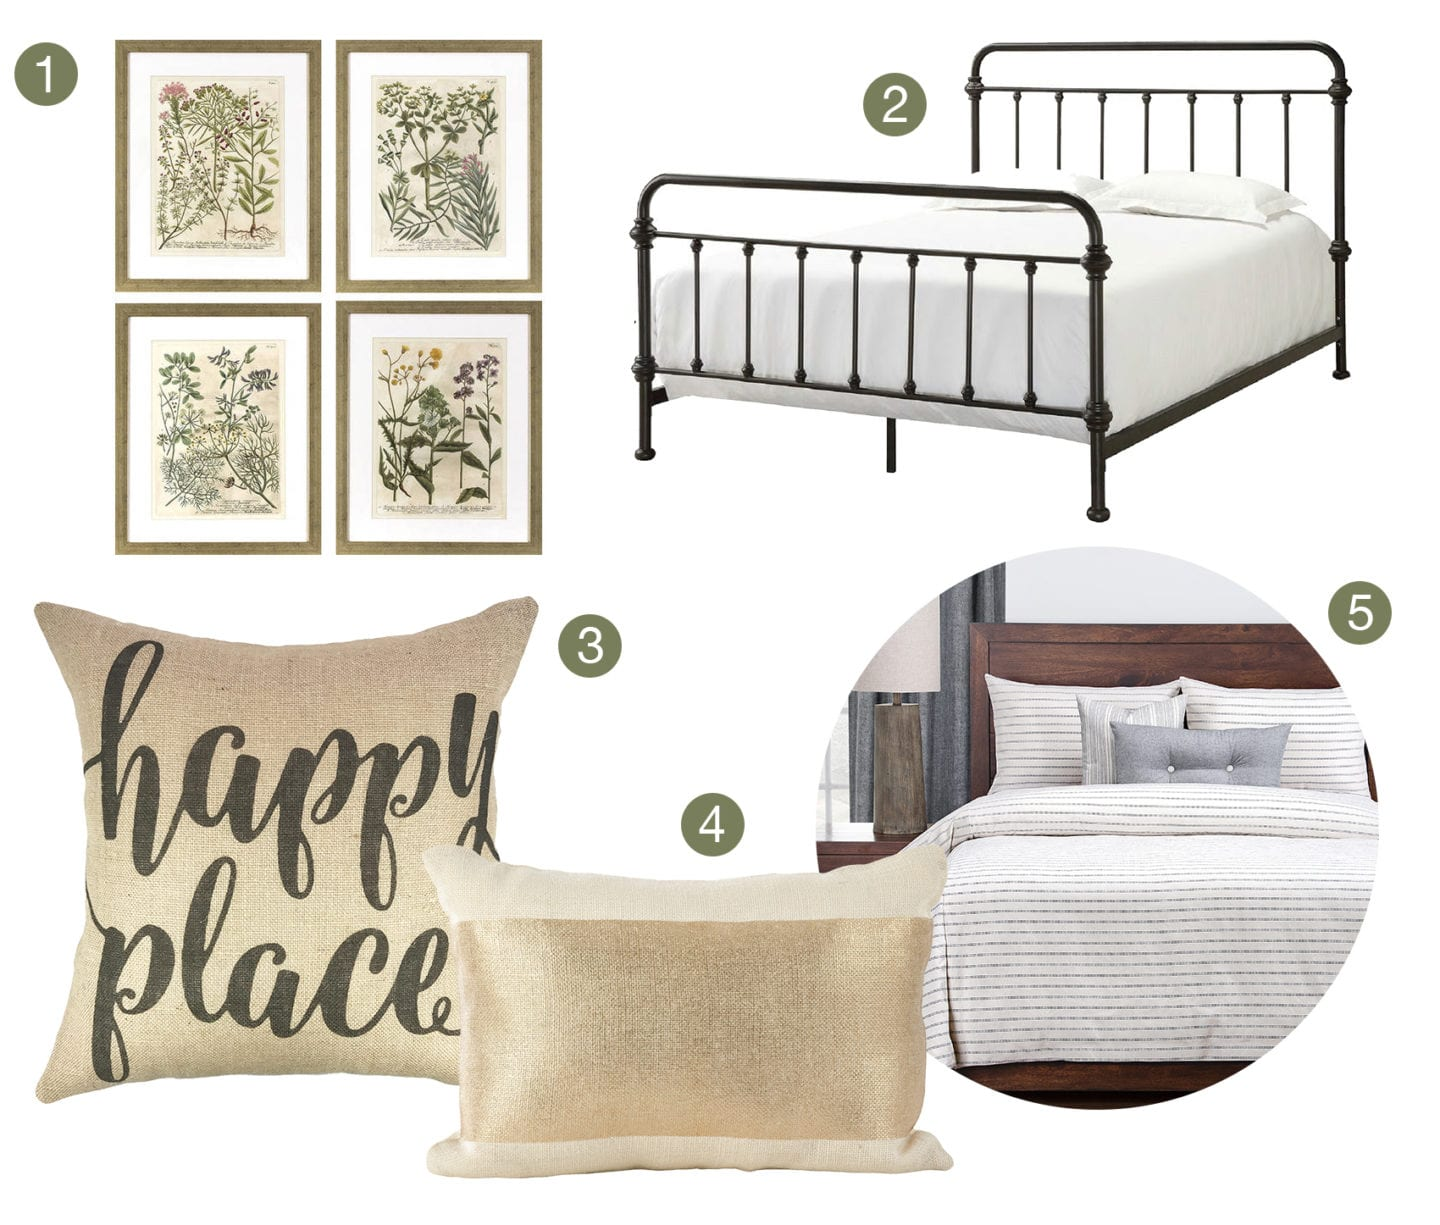 Collage of farmhouse style bedding and furniture